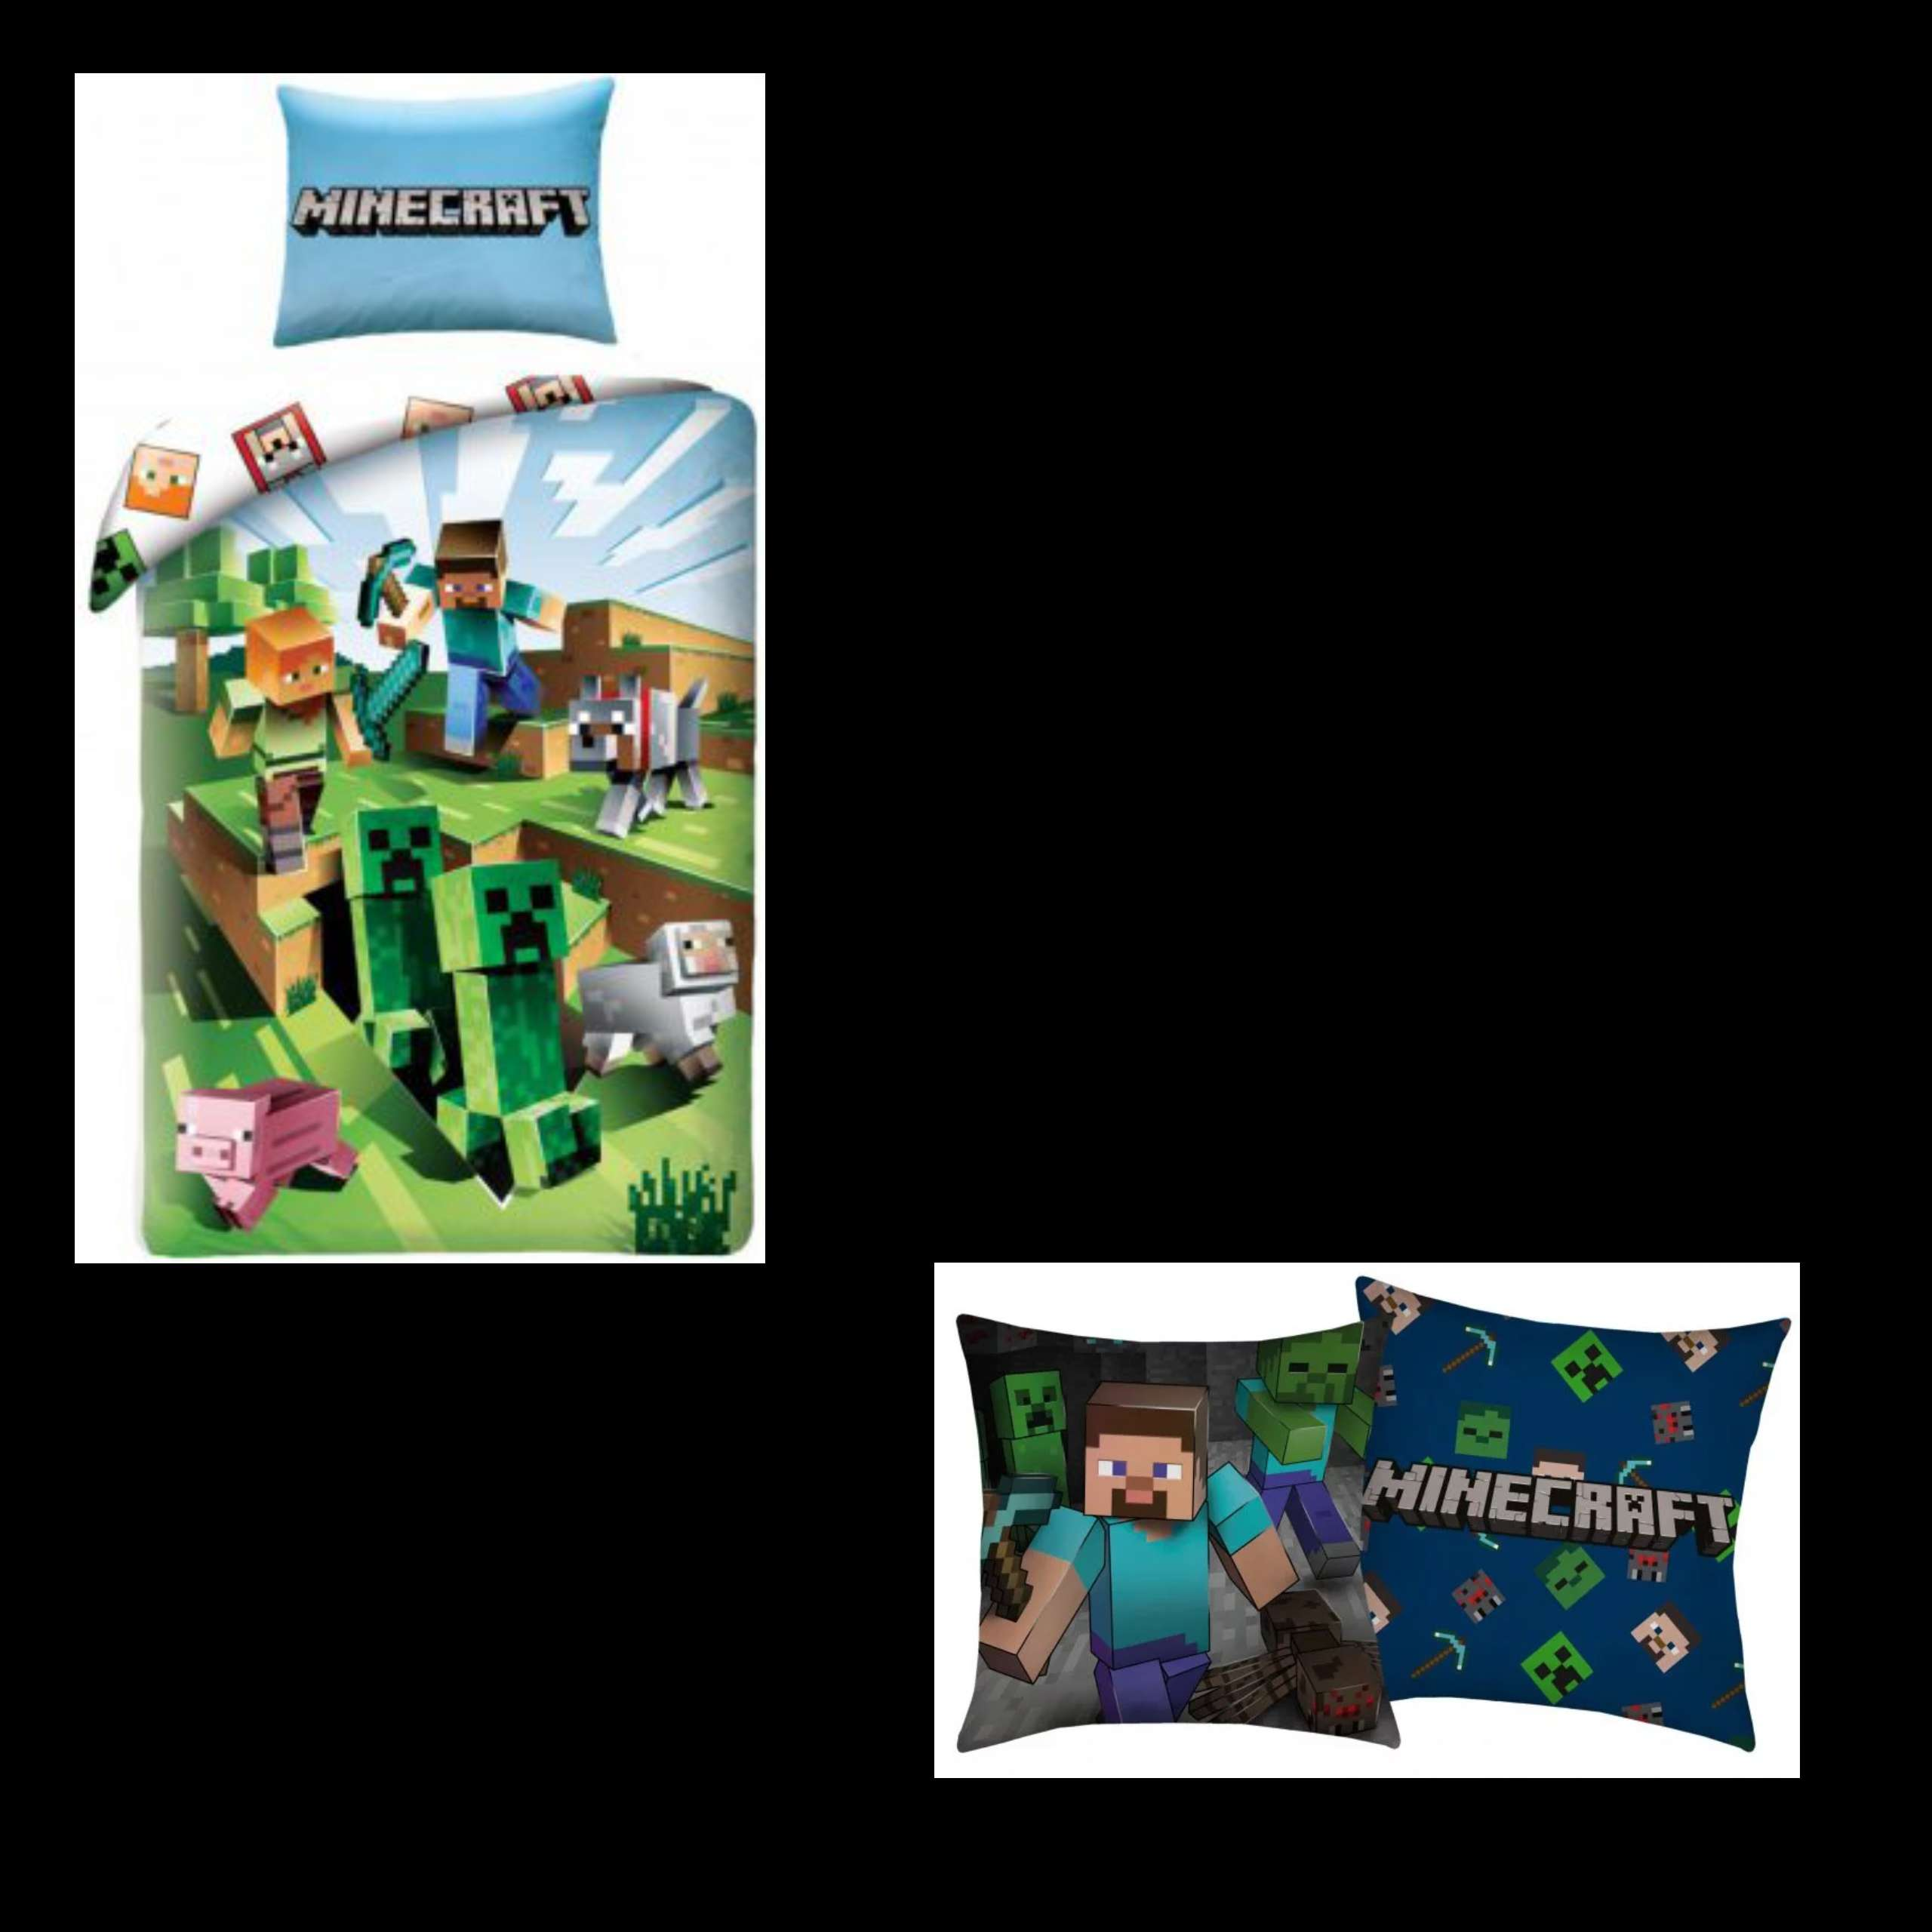 MineCraft Single Duvet Cover And Pillowcase And Cushion Set